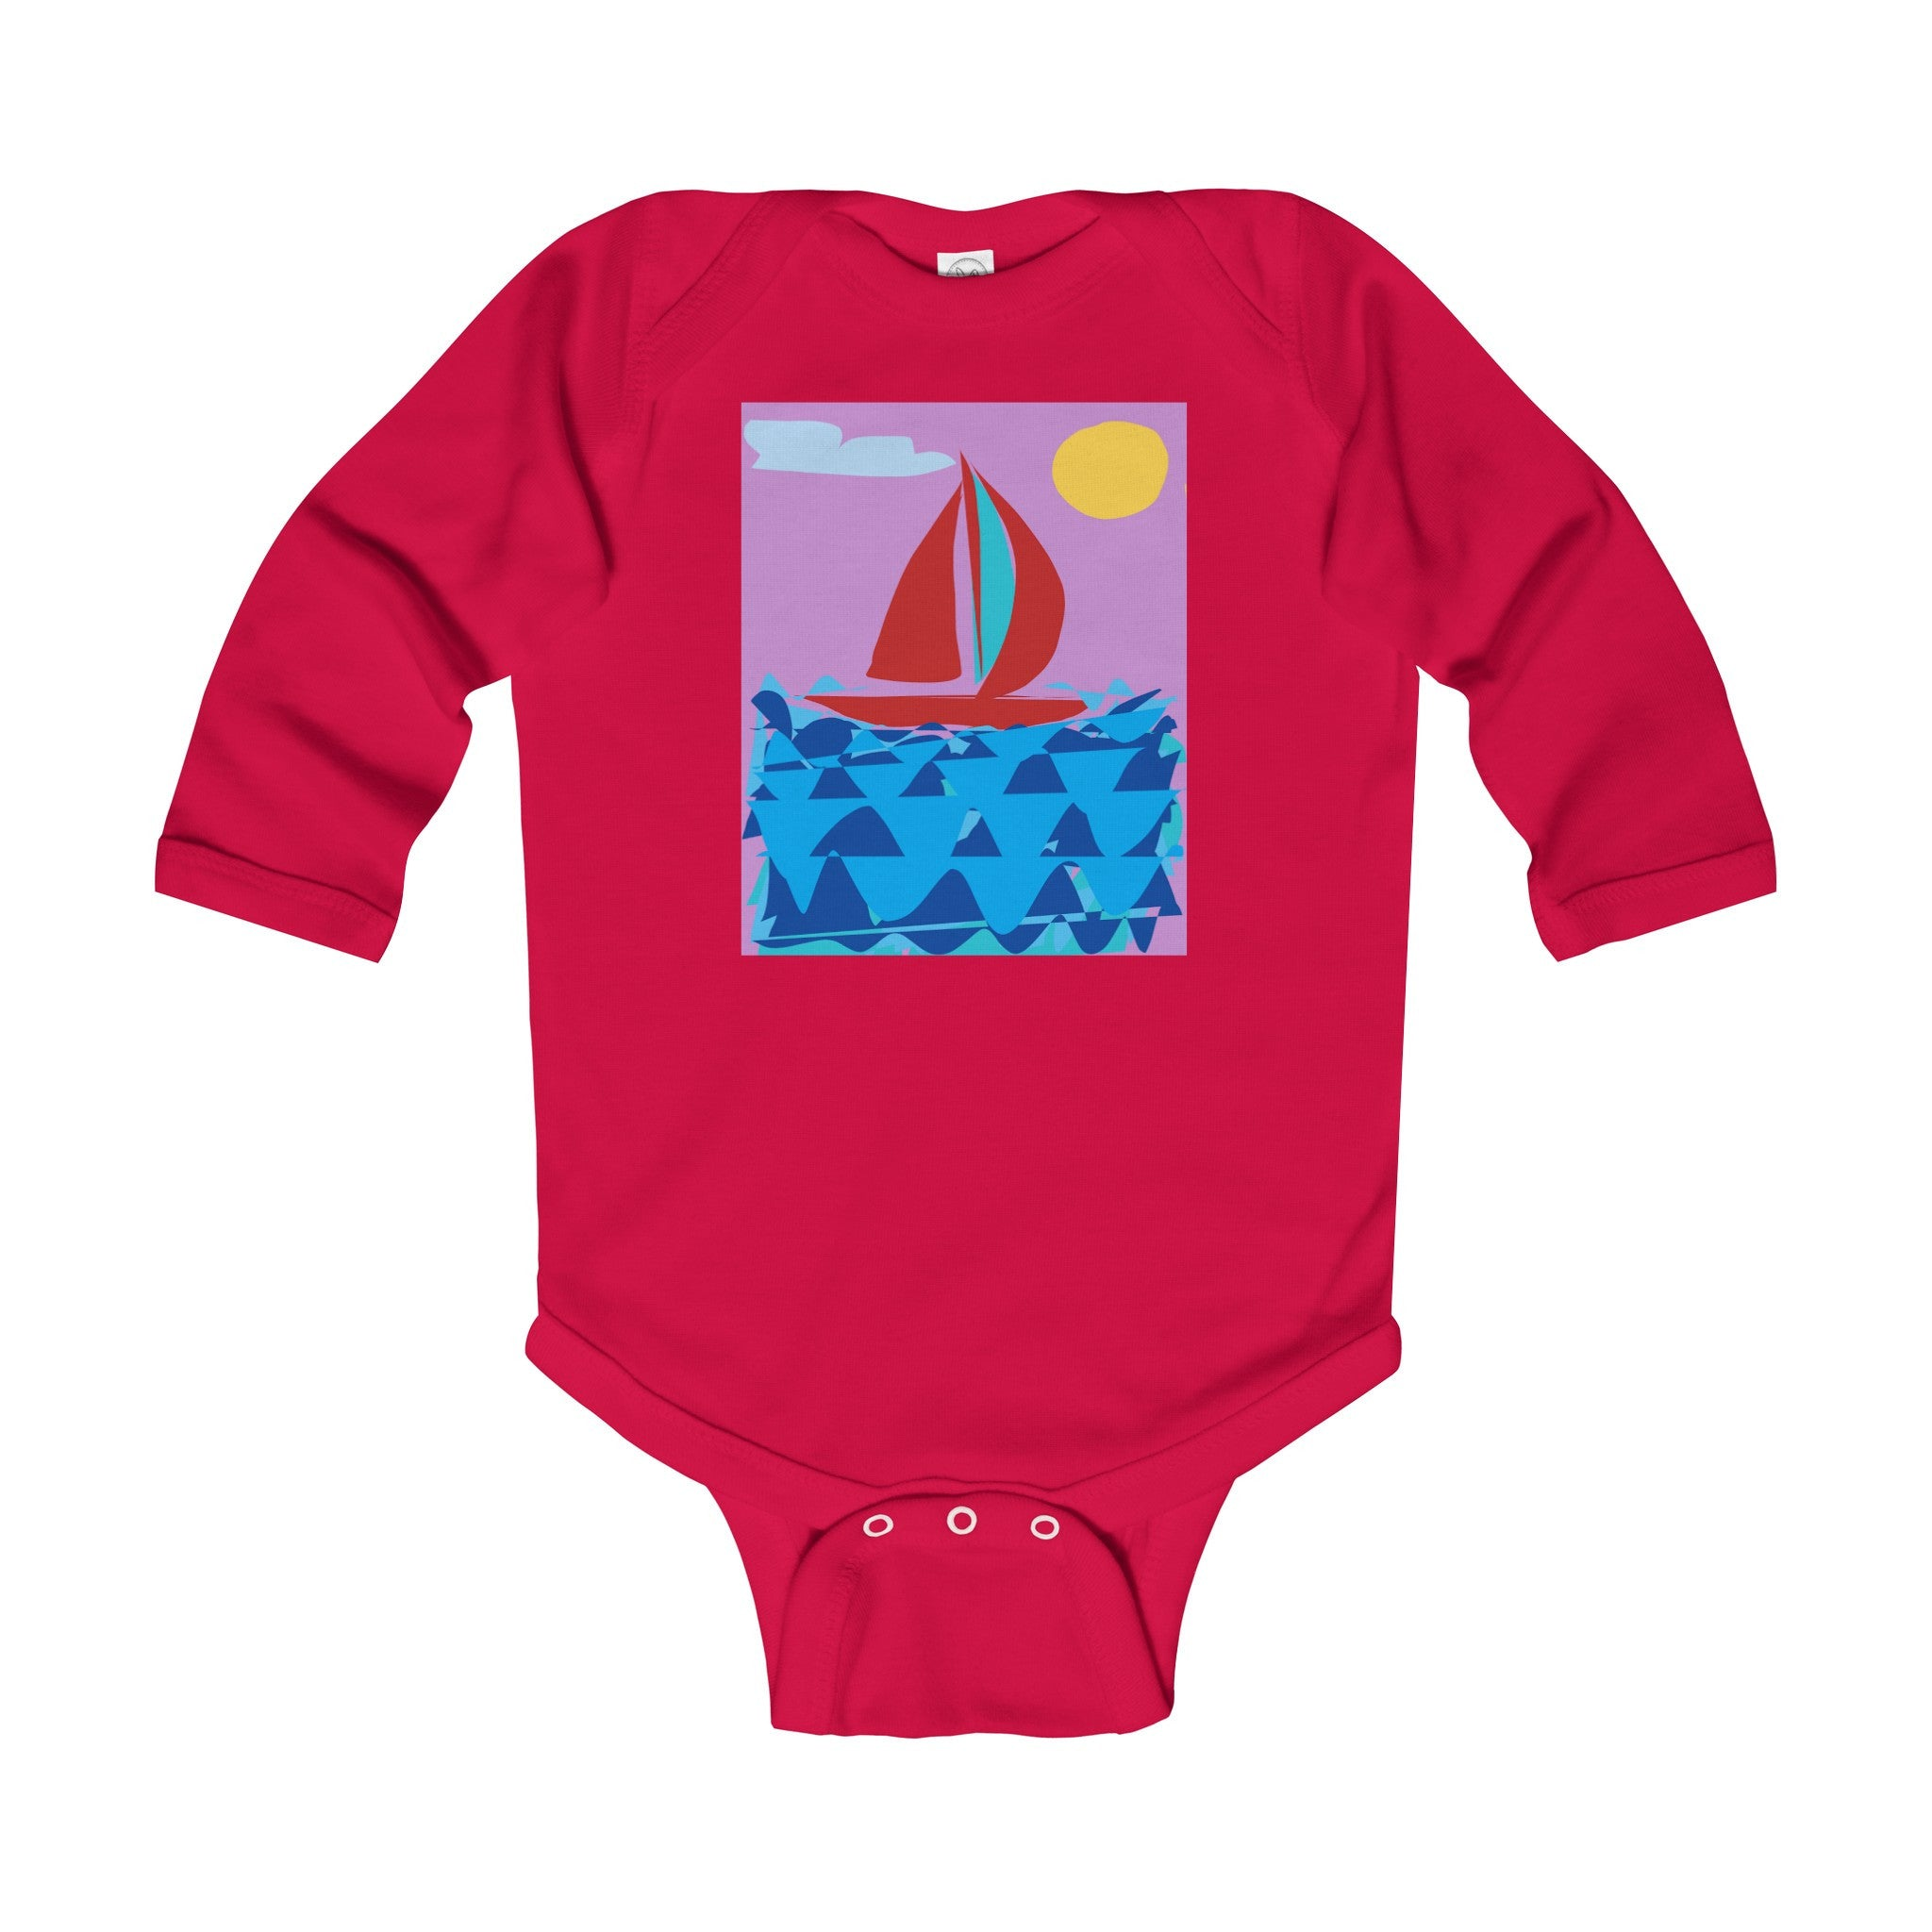 Infant Long Sleeve Bodysuit-Kids clothes-Printify-6-12M-Red-Love My Husband Shop